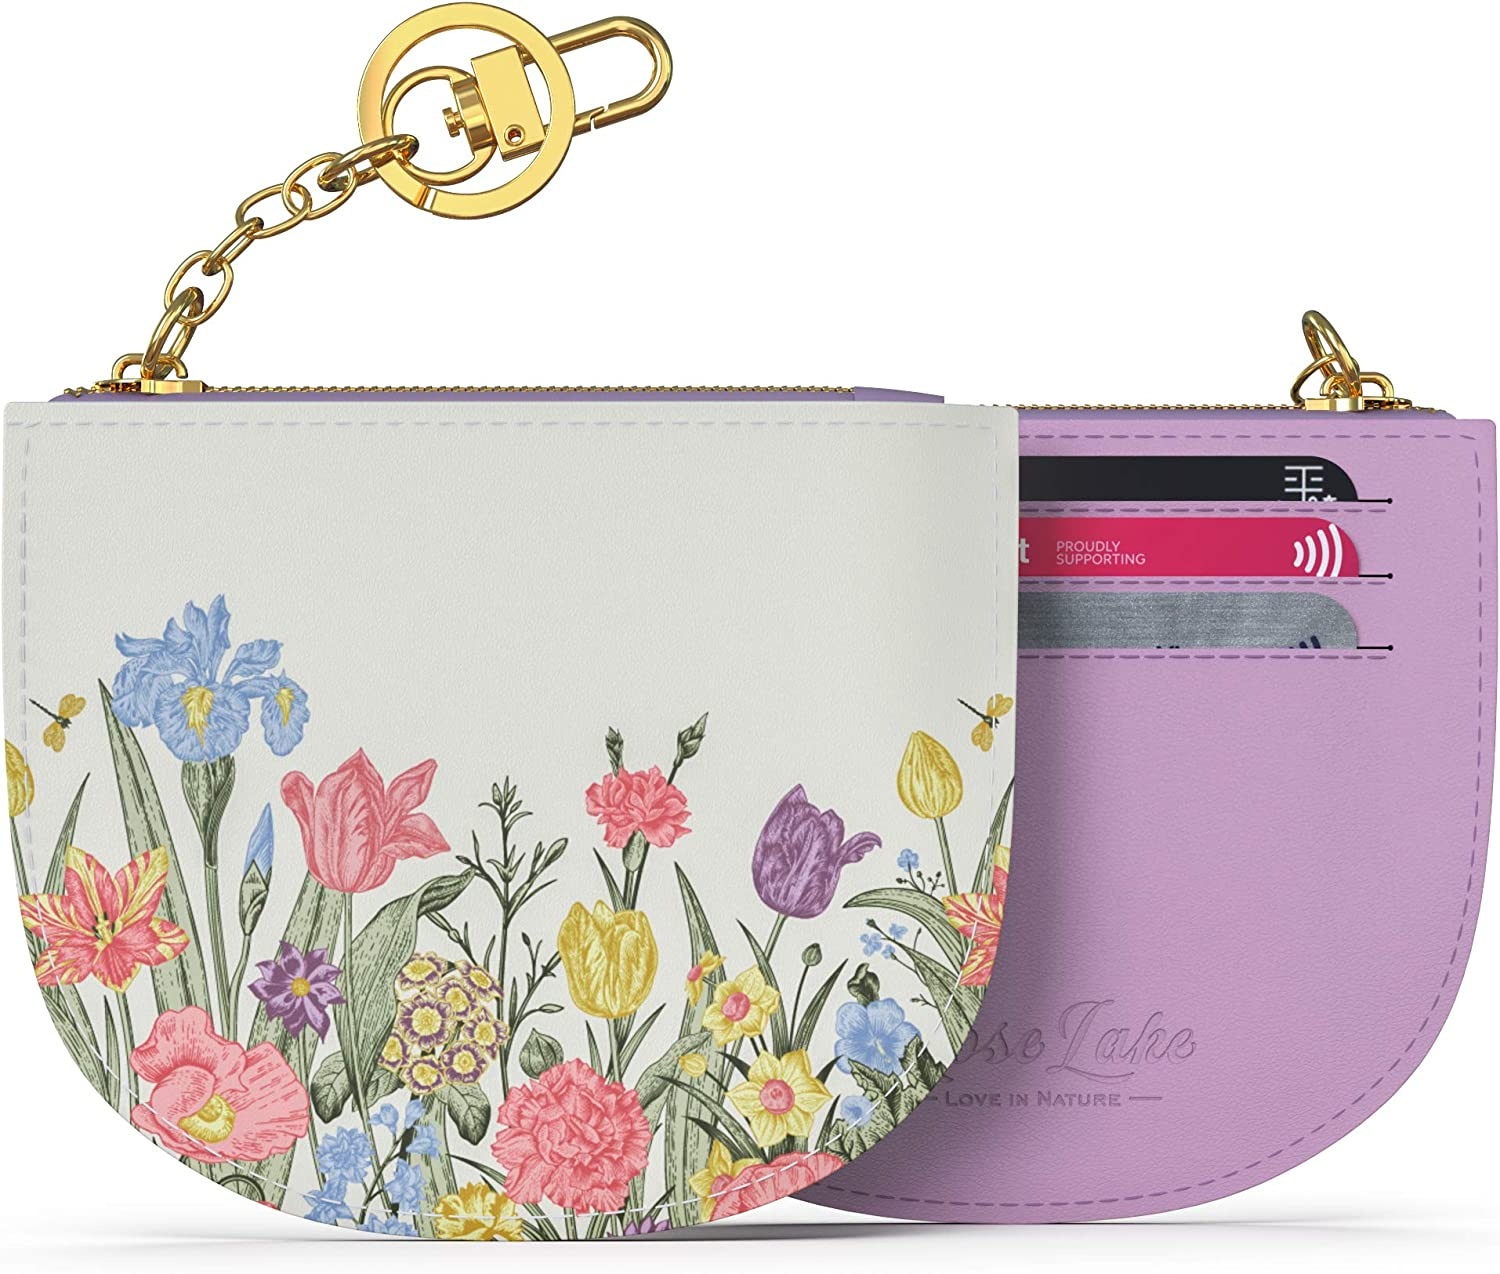 Amazon Com Coin Purse Change Card Case Wallet With Keychain Soft Leather Mini Zipper Pouch Women Girls Gift Flower Purple Shoes